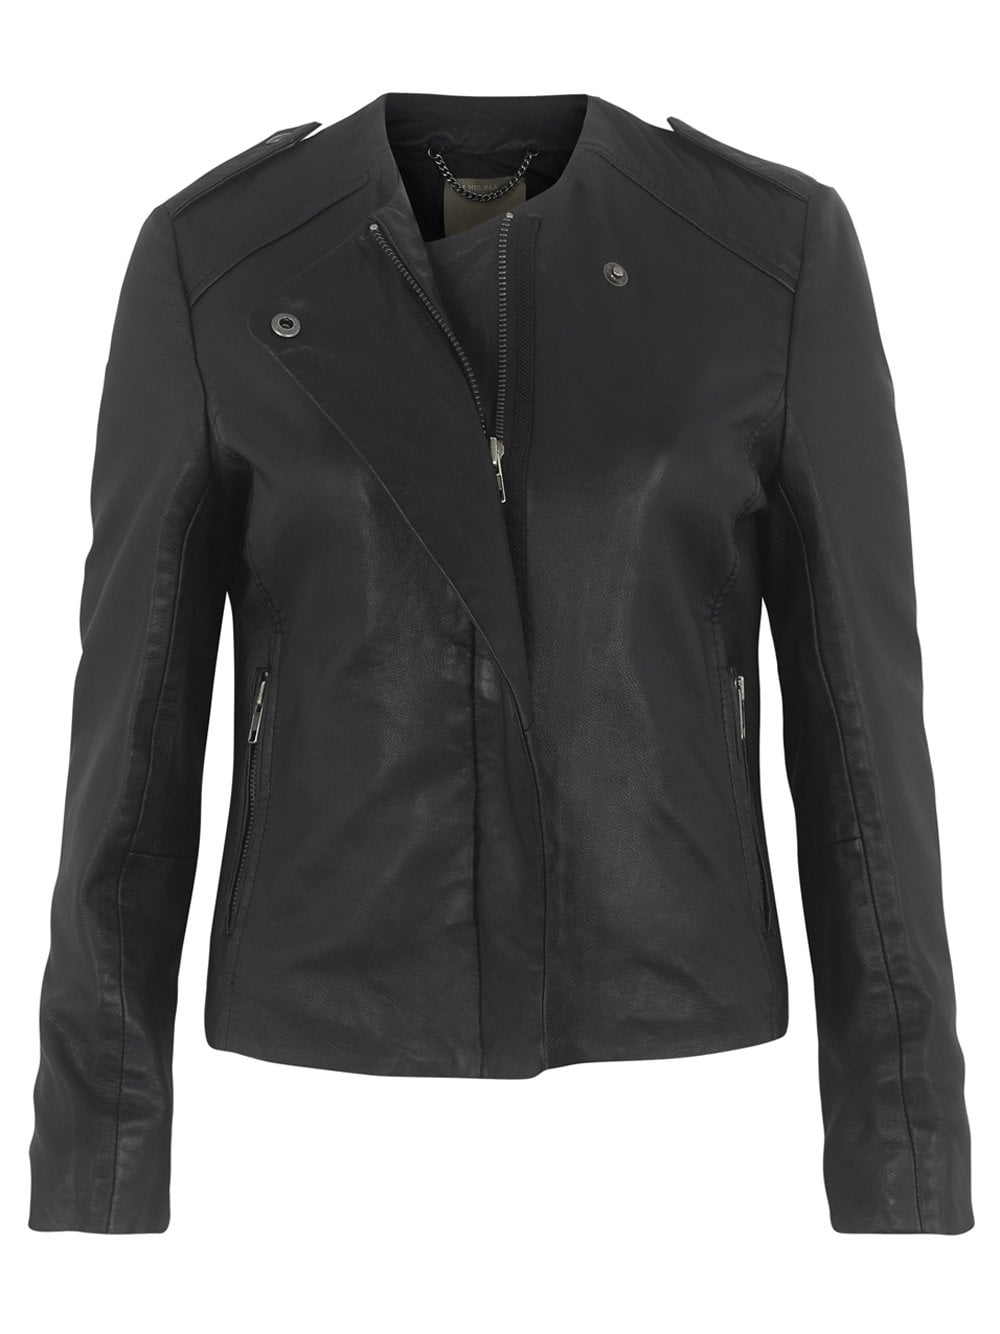 Muubaa Norma Collarless Leather Jacket in Black